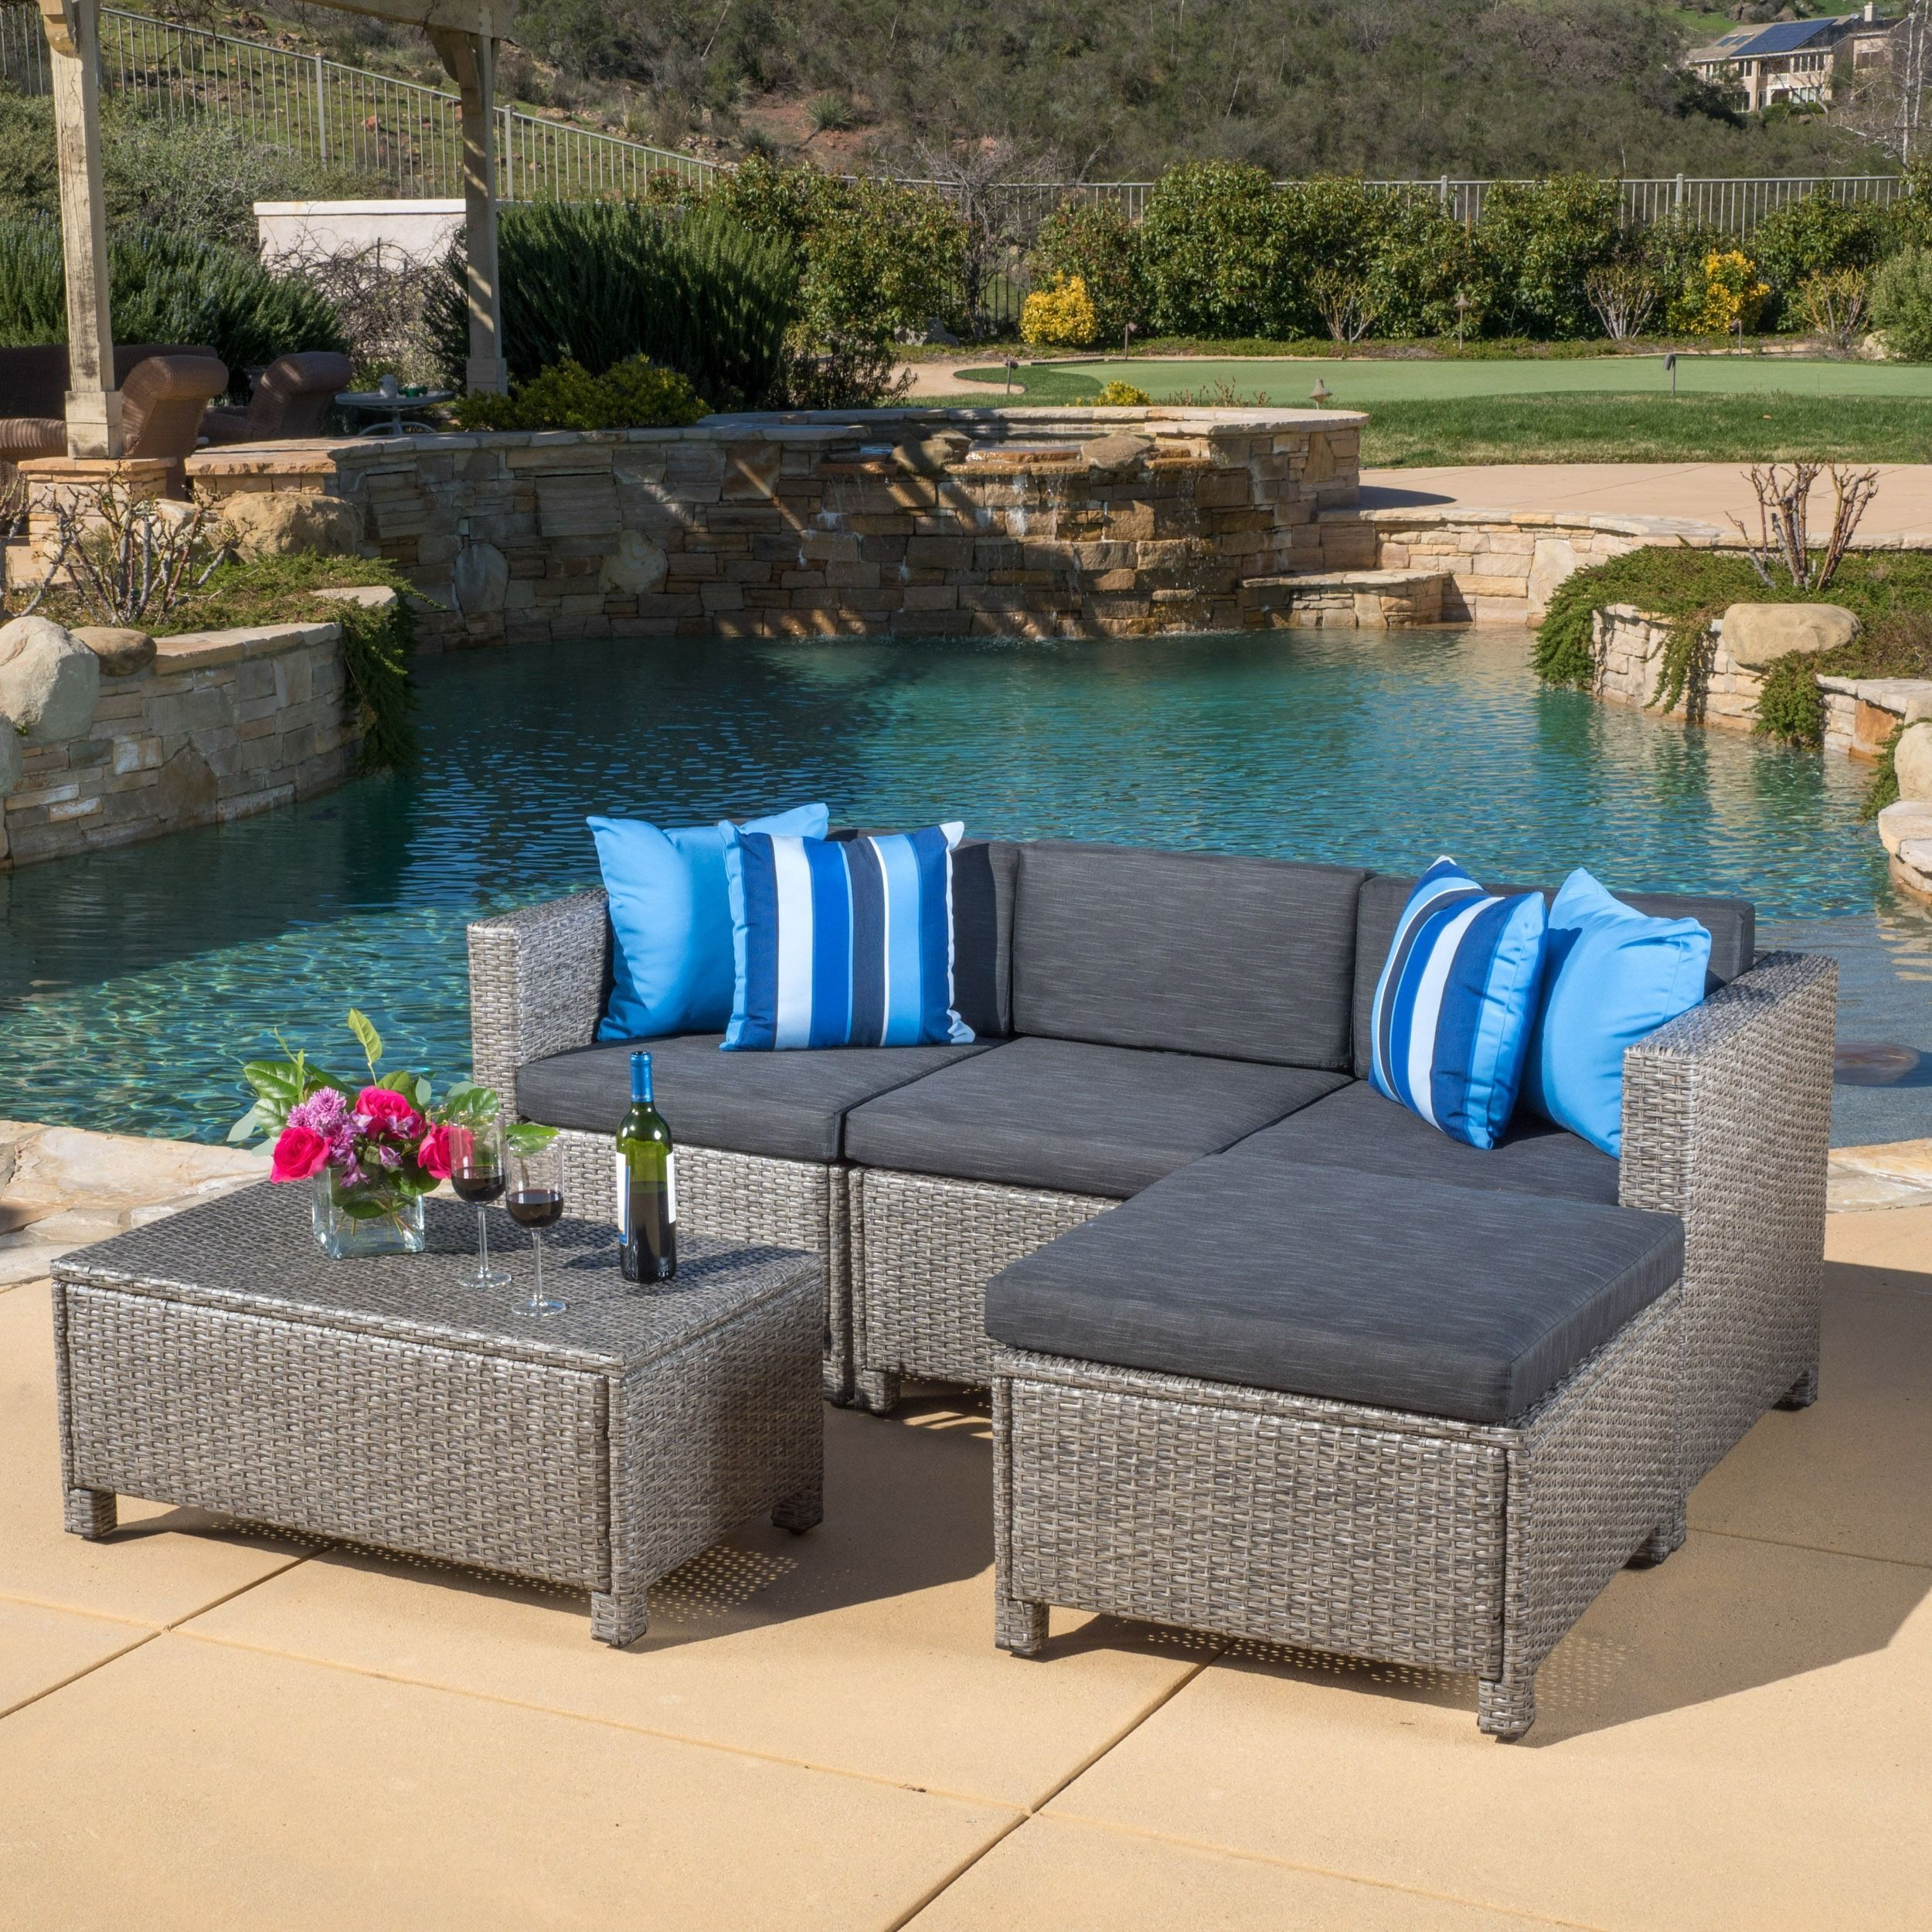 Furnish your outdoor living space with this lush outdoor wicker